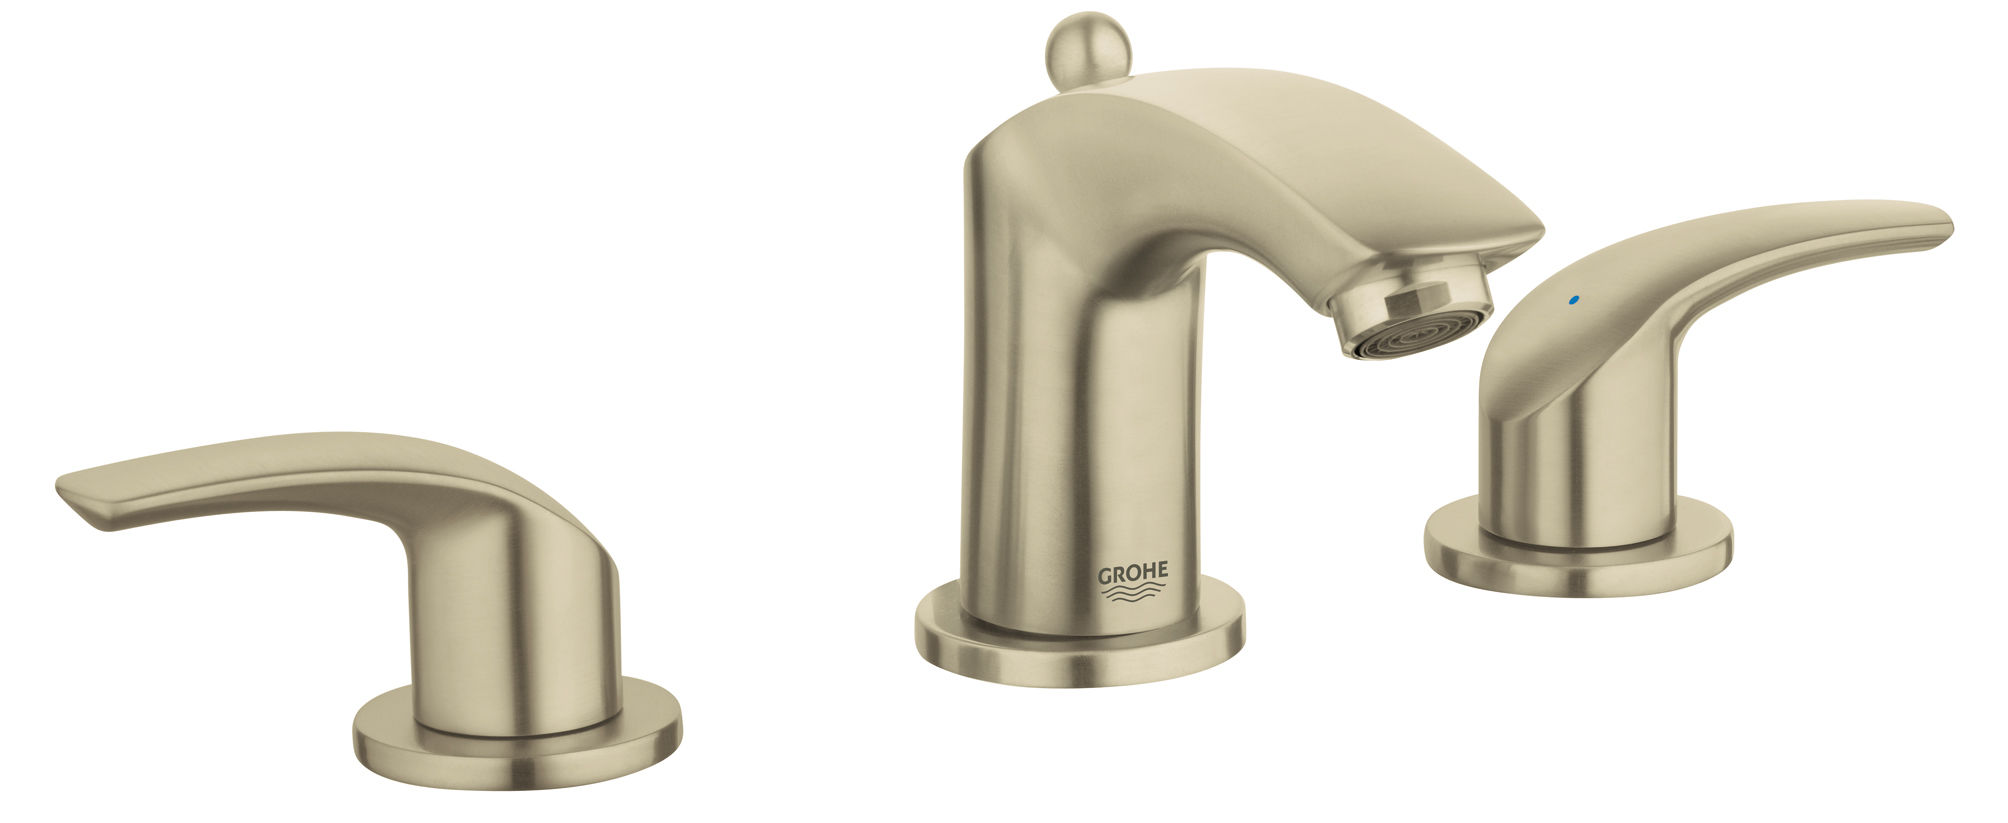 Grohe 124068 Warm Brushed Nickel Eurosmart Widespread Bathroom Faucet With  SilkMove Technology   Free Metal Pop Up Drain Assembly With Purchase ...